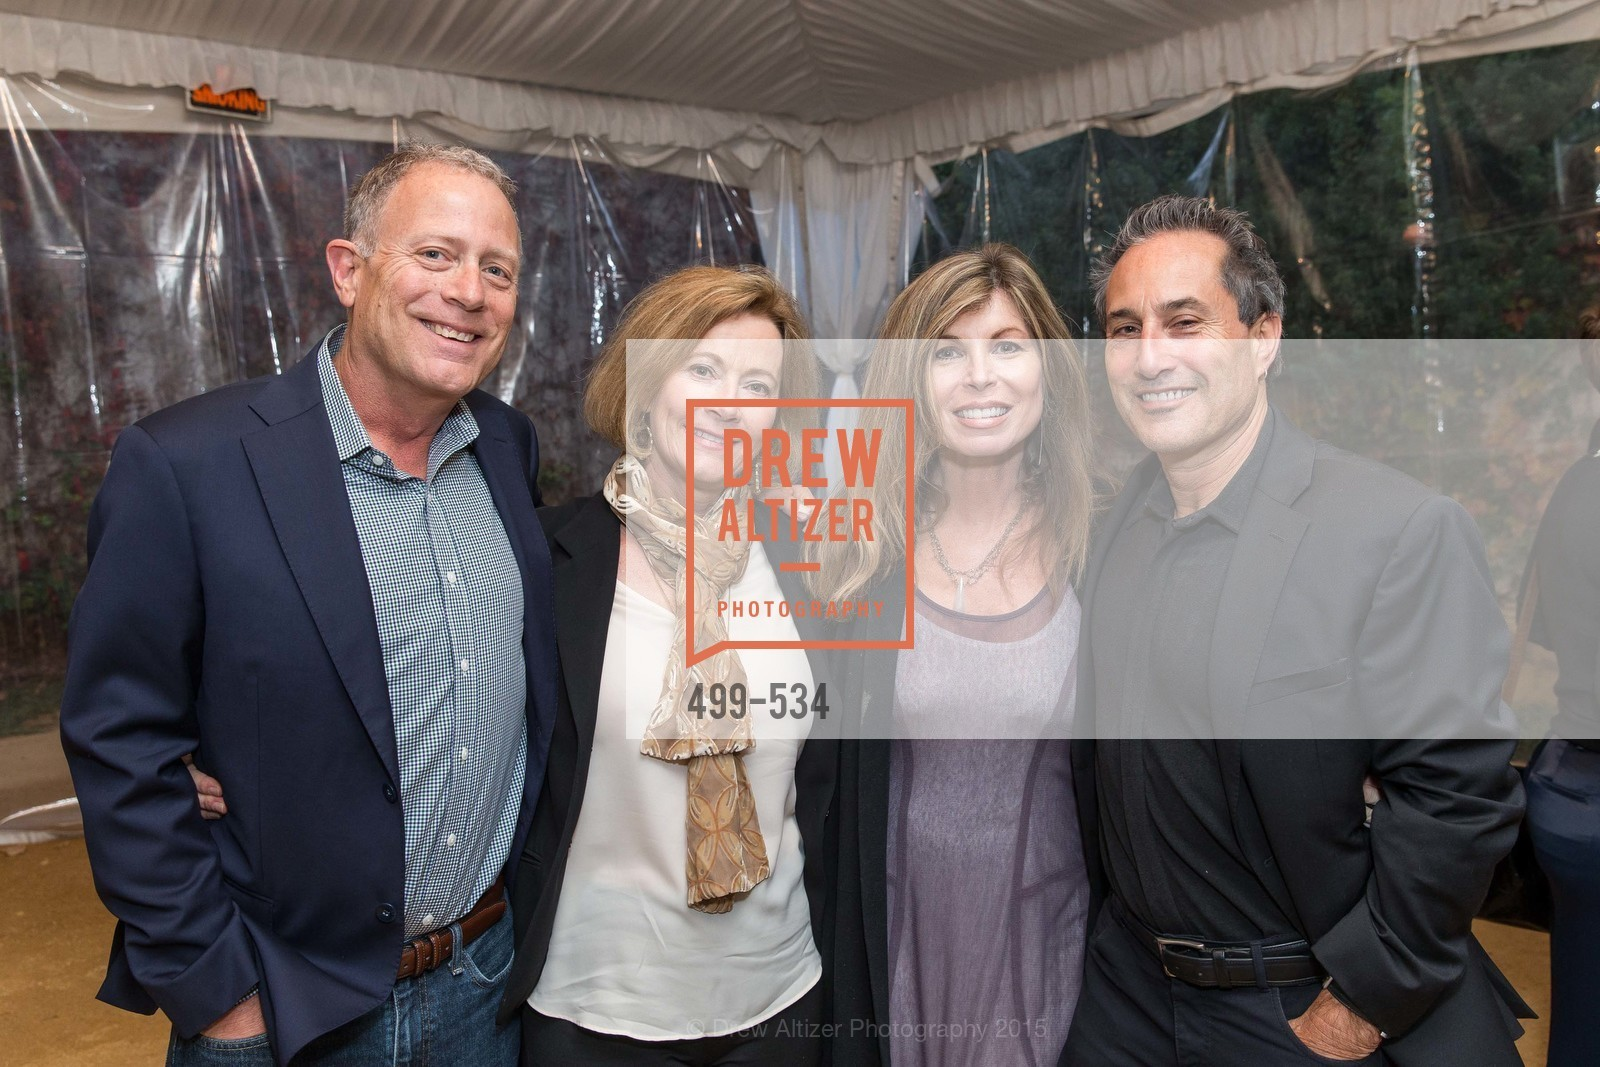 Eddie Dicky, Carrie Strahan, Tracy Ferm, Rick Ferm, Perfecting Pairings - Food, Wine and Stories, Chateau St Jean, Kenwood, November 14th, 2015,Drew Altizer, Drew Altizer Photography, full-service agency, private events, San Francisco photographer, photographer california